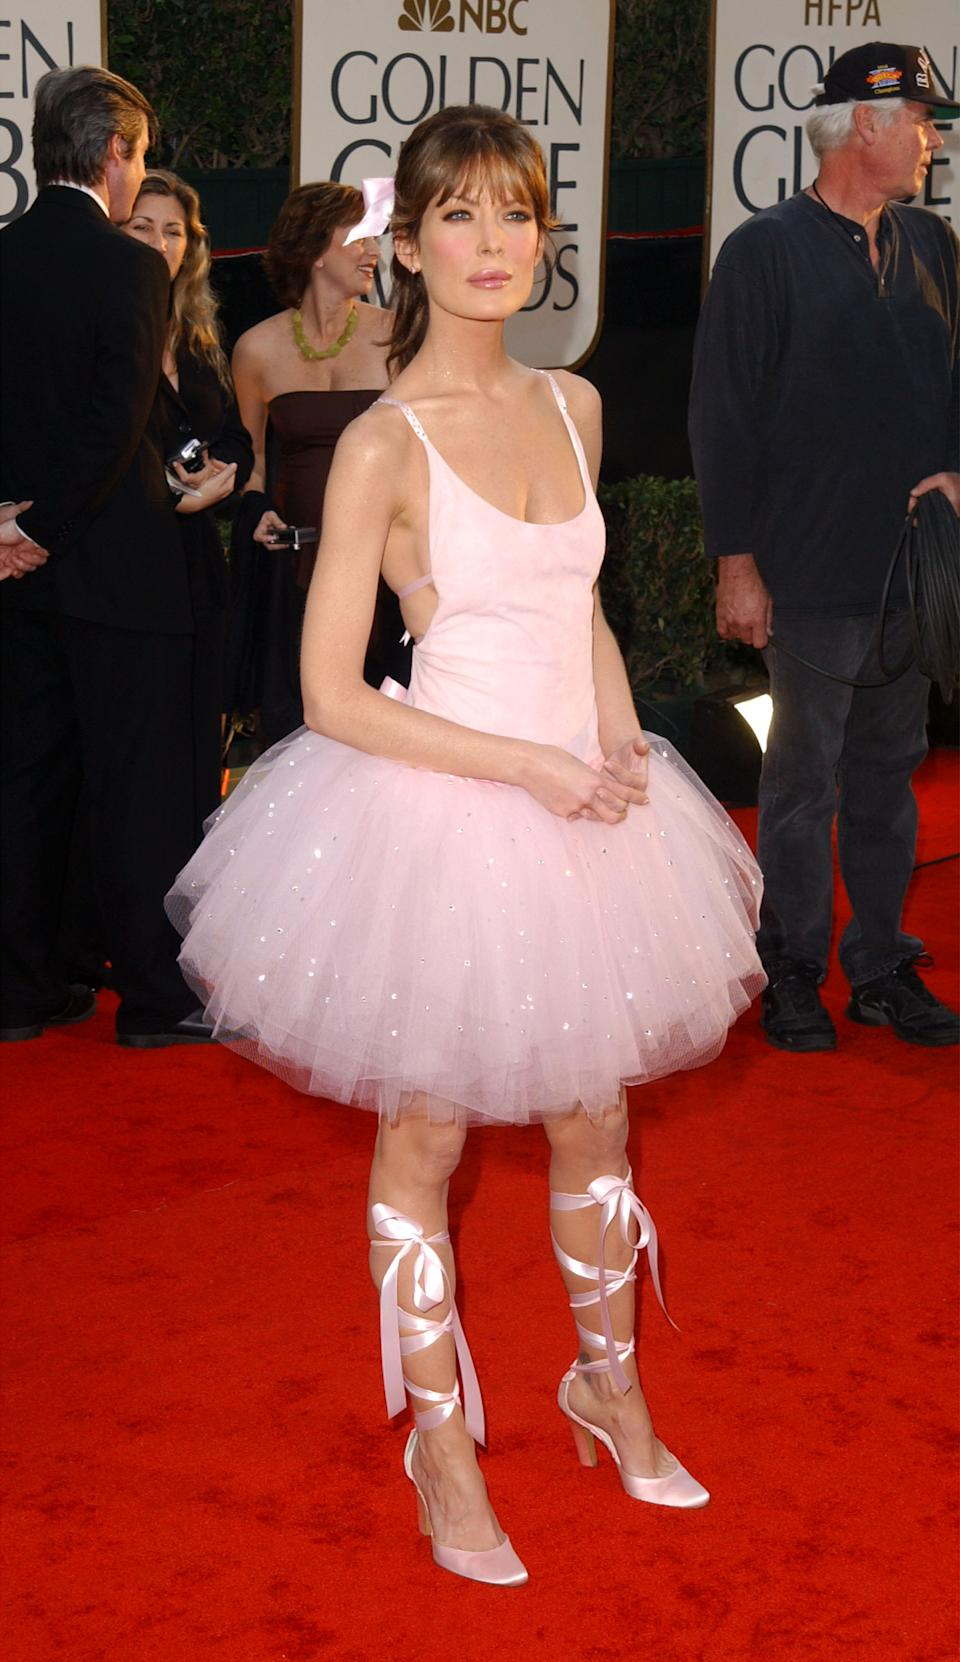 <p>This one is quite possibly the most historically atrocious Golden Globes dress of all time. Is it a children's ballerina Halloween costume? Because it may as well have been. Who signed off on this? We just want to talk. (Image via Getty Images)</p>